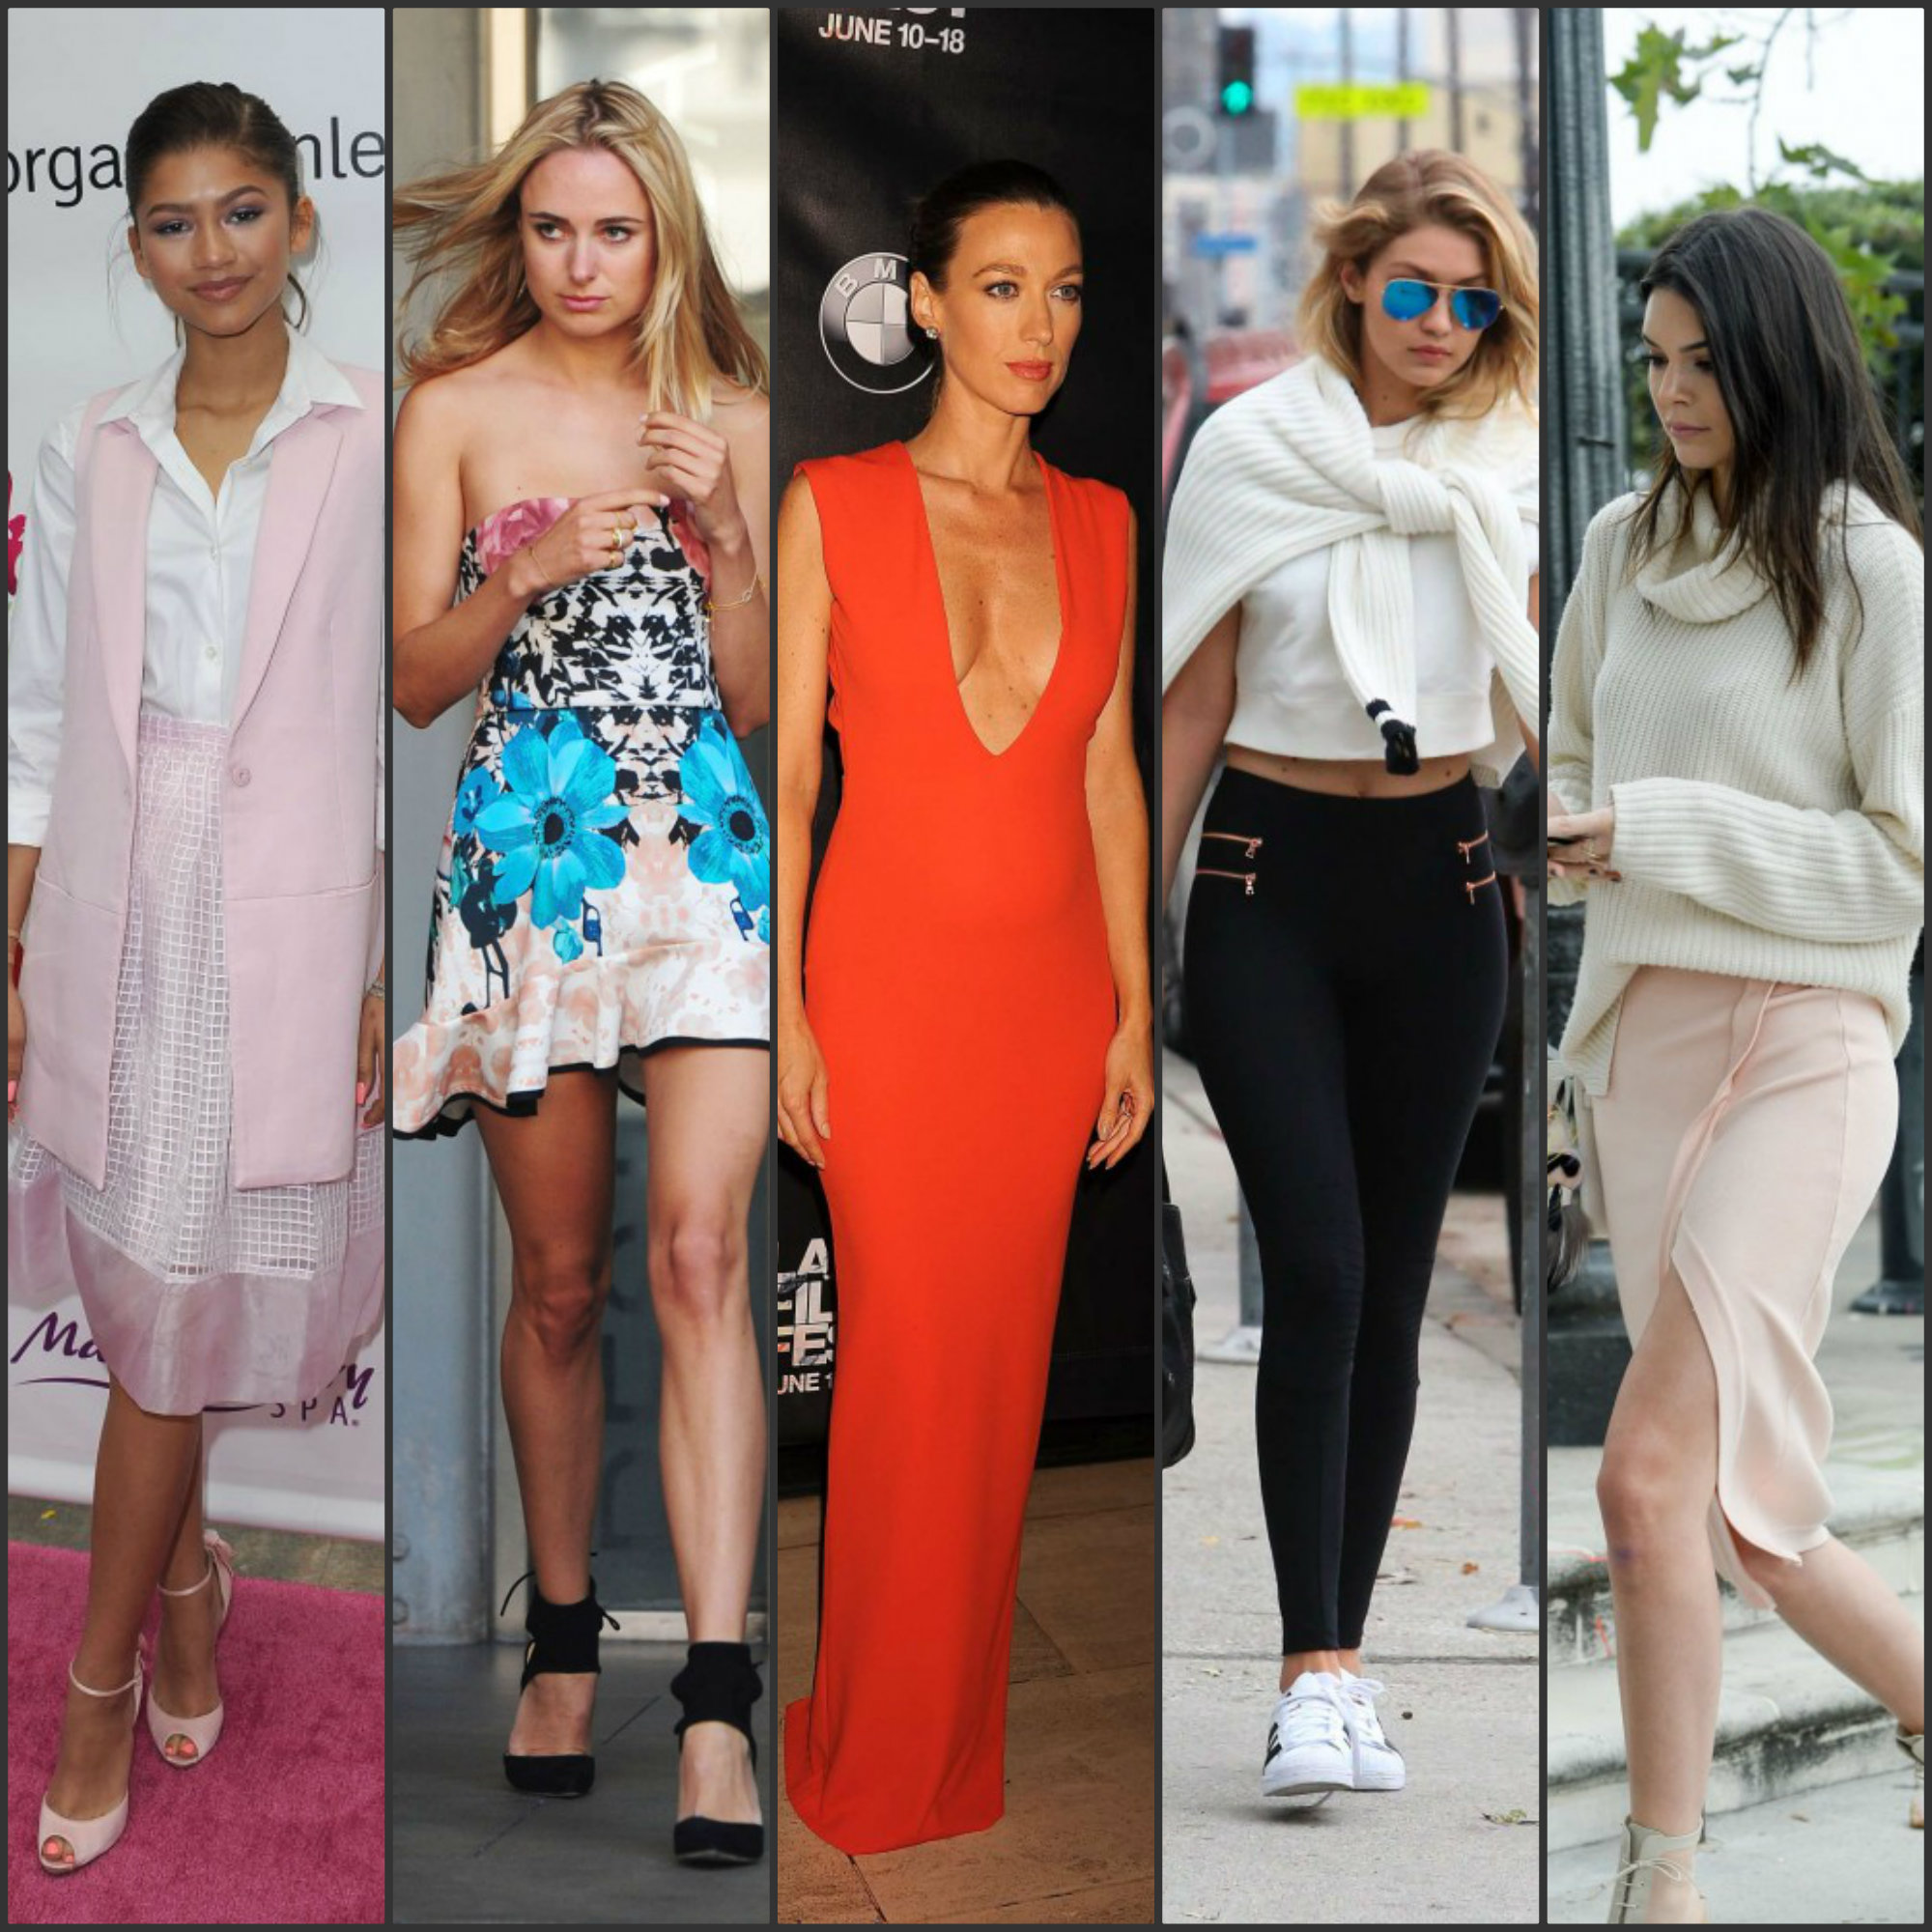 spotted-gigi-hadid-kendall-jenner-zendaya-and-more